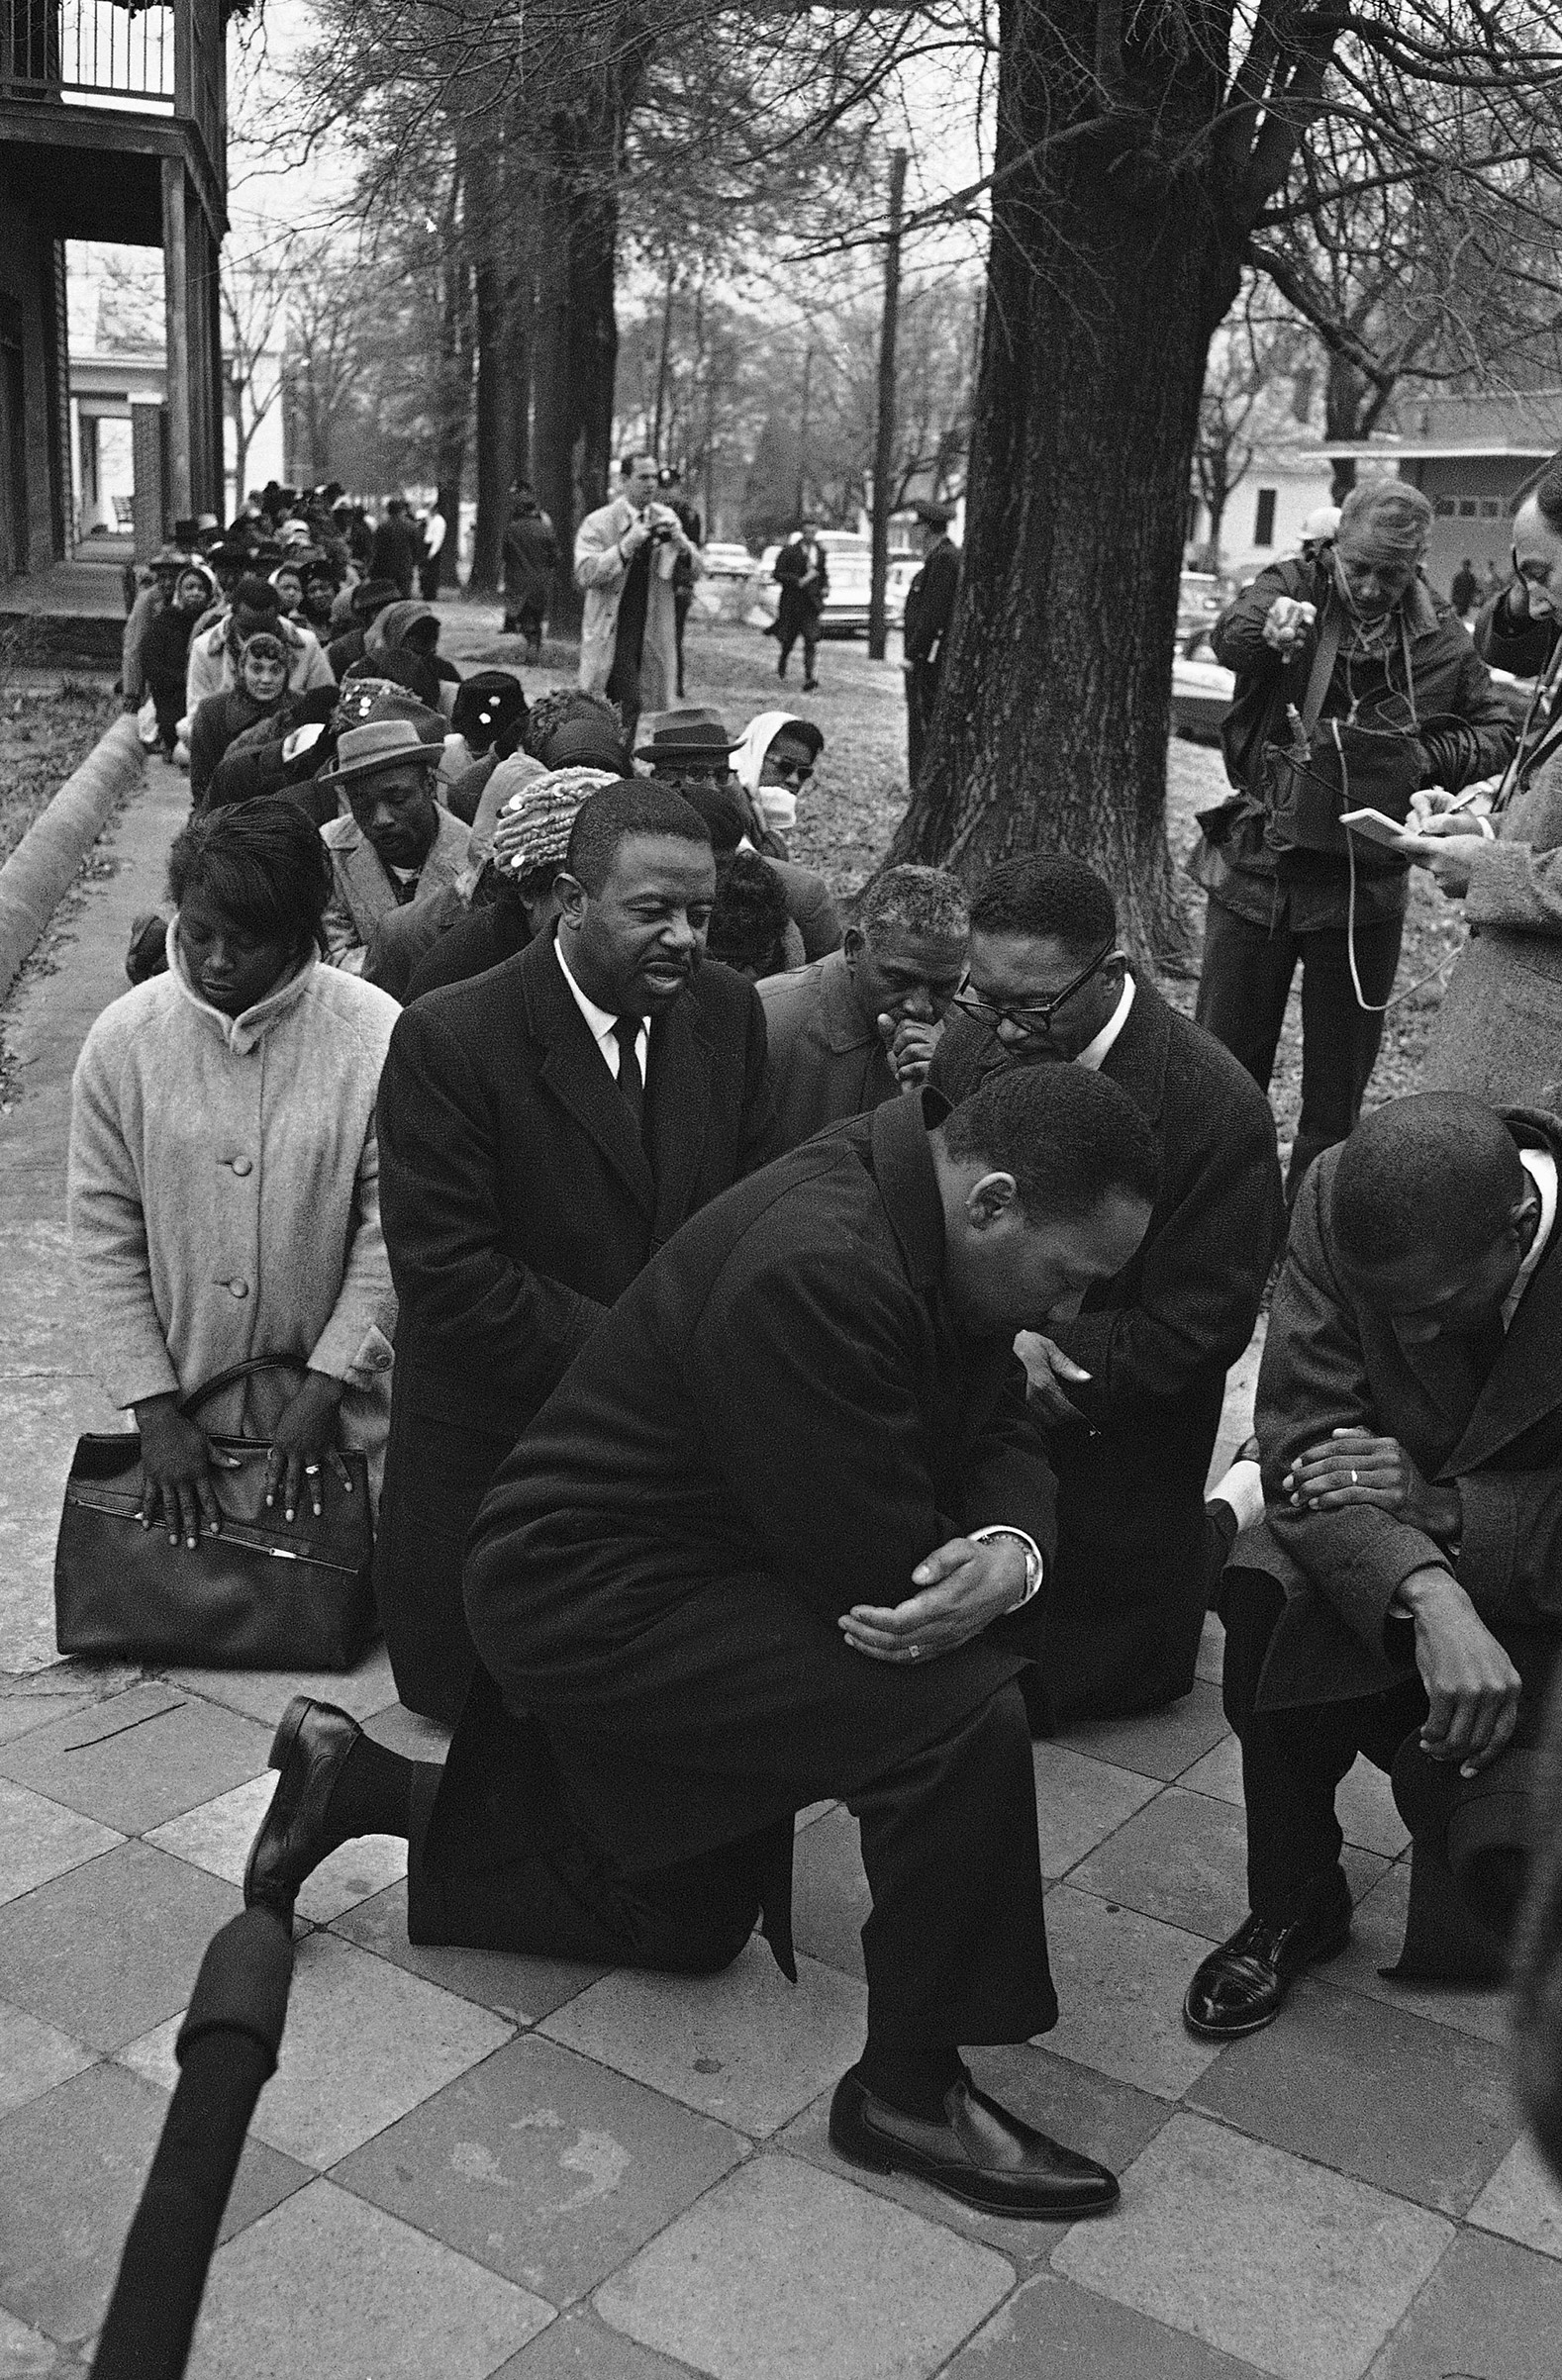 Dr. Martin Luther King Jr., center, leads a group of civil rights workers and Selma black people in prayer on Feb. 1, 1965 in Selma, Alabama after they were arrested on charges of parading without a permit. More than 250 persons were arrested as they marched to the Dallas County courthouse as part of a voter registration drive.